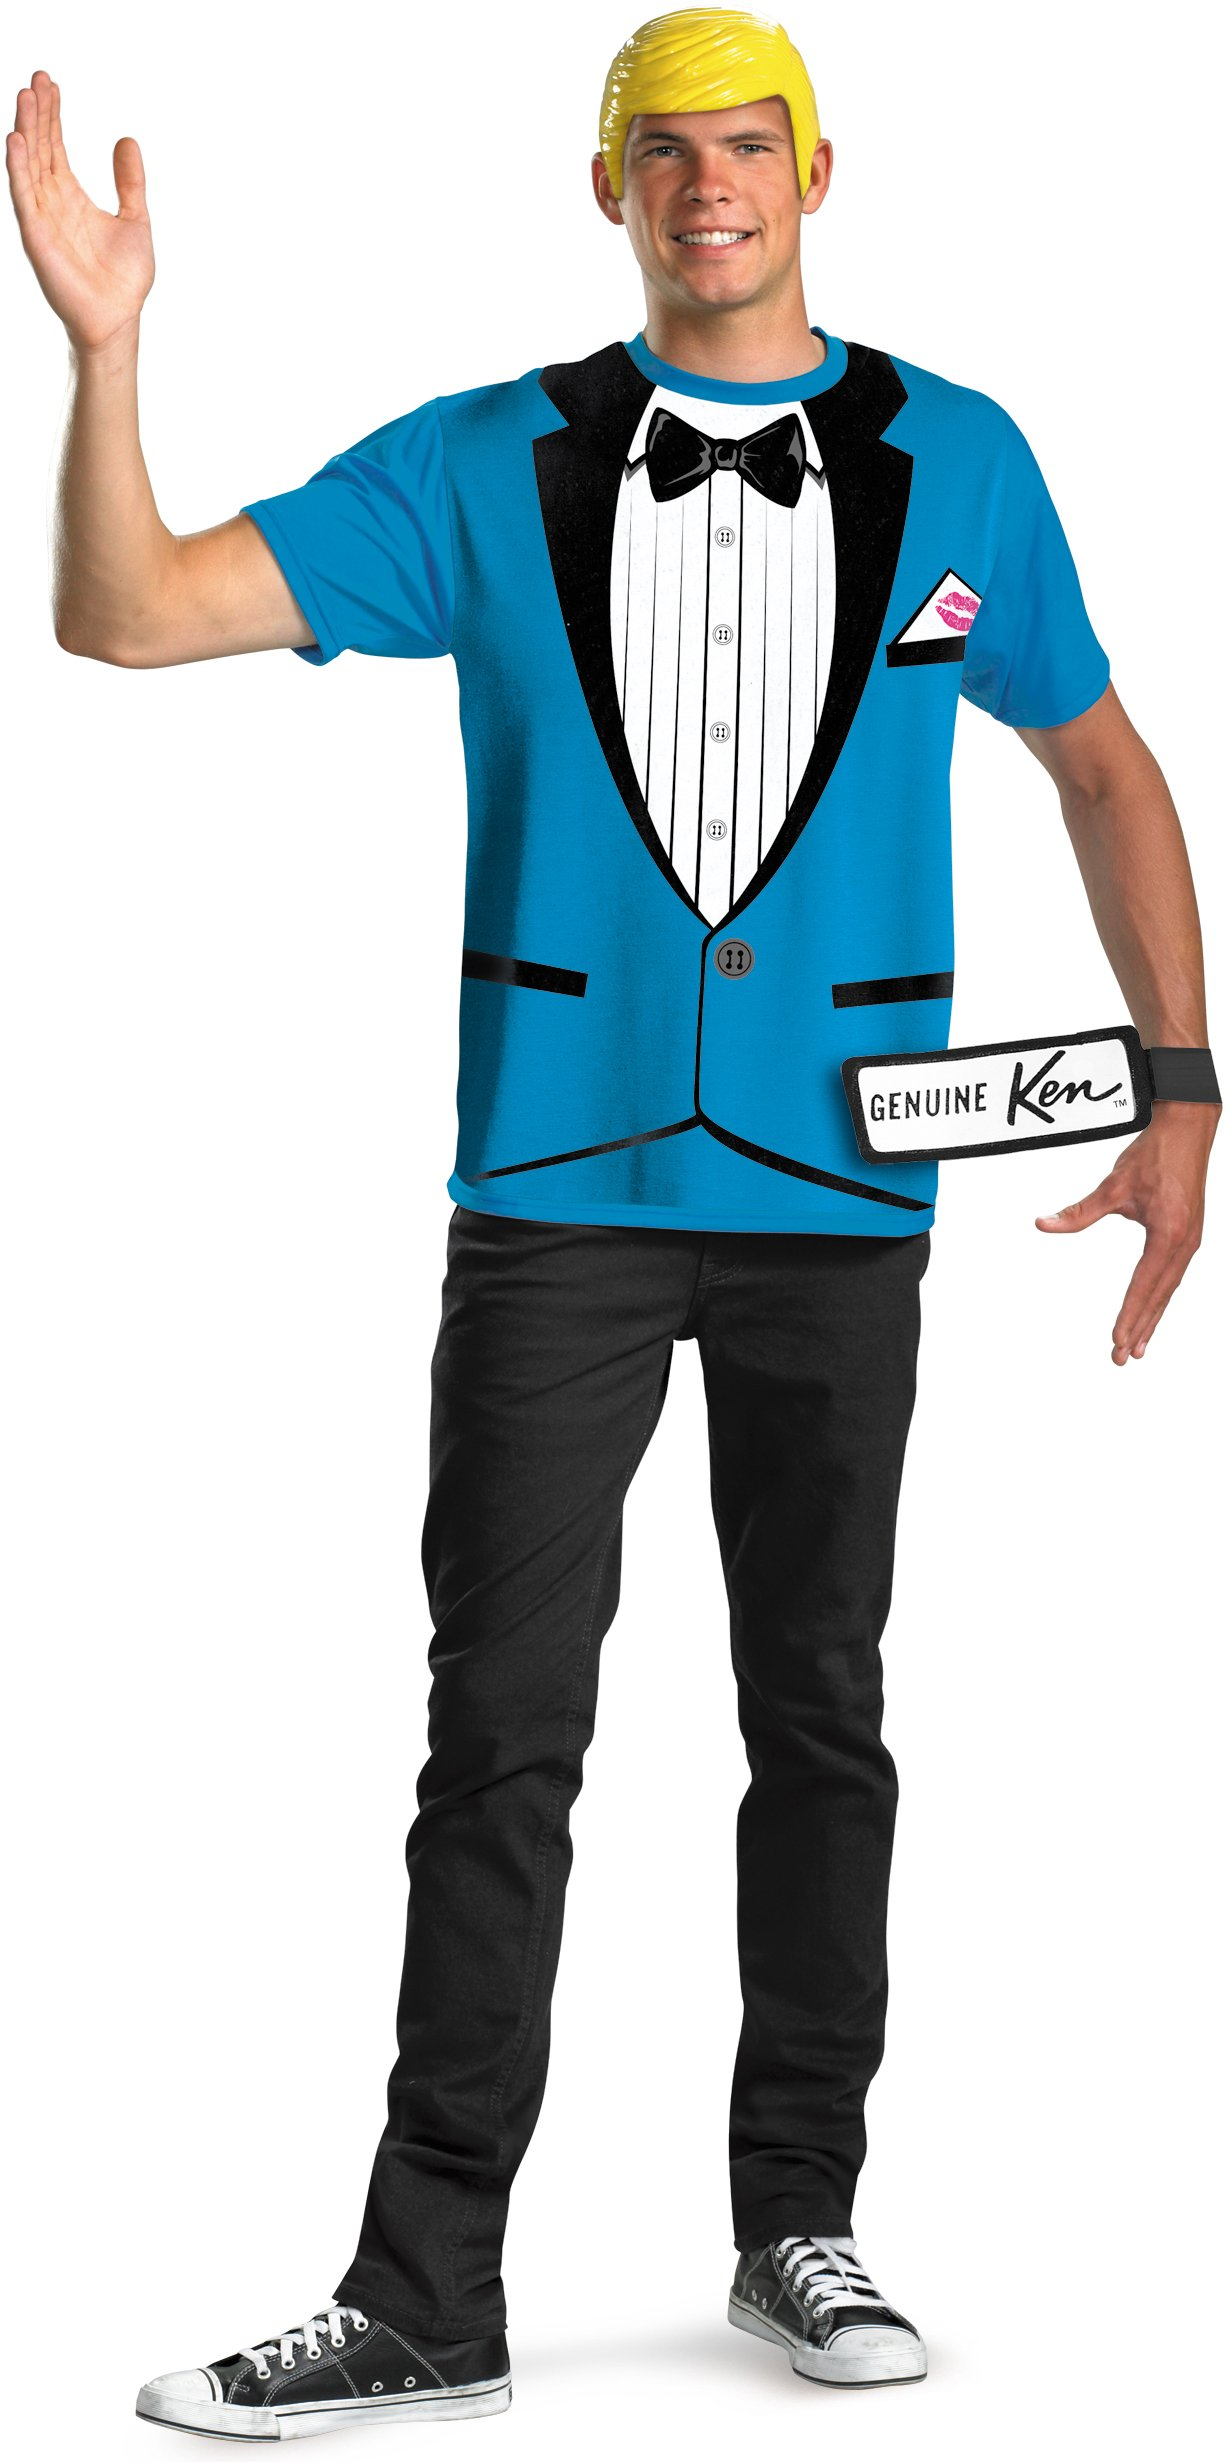 Ken T-Shirt And Mask Teen / Adult Costume Set